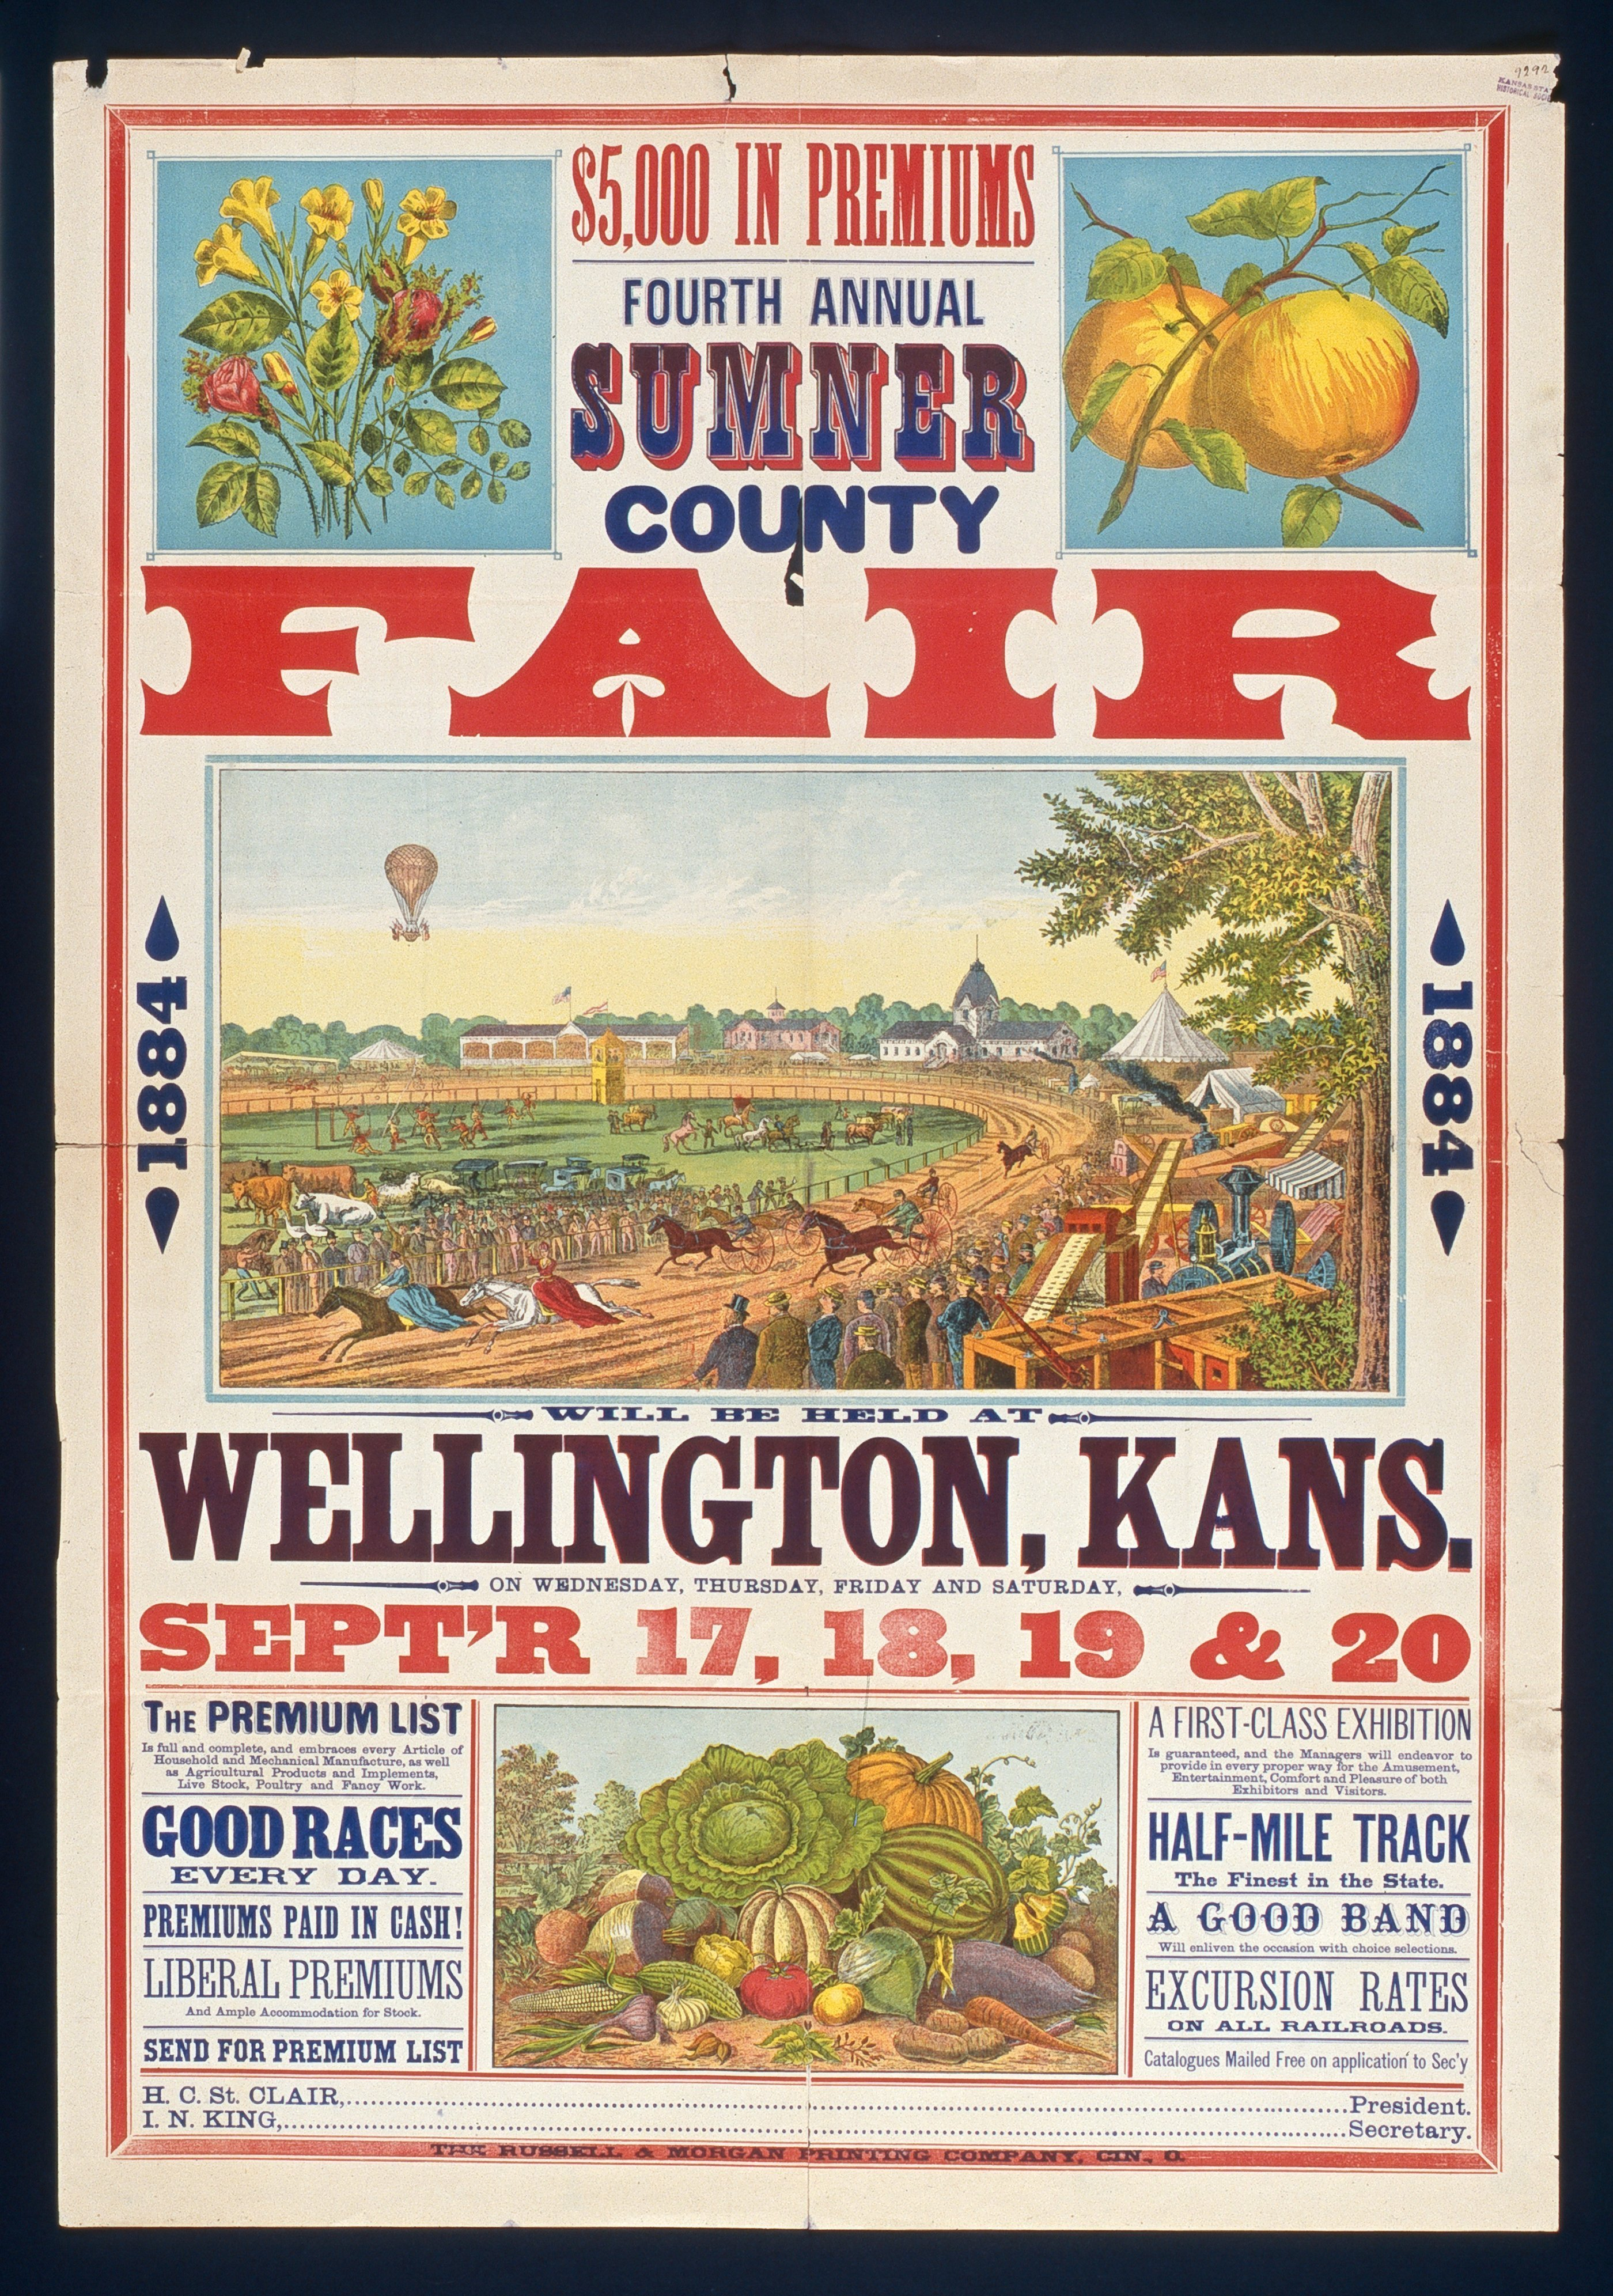 State fair dates in Wellington